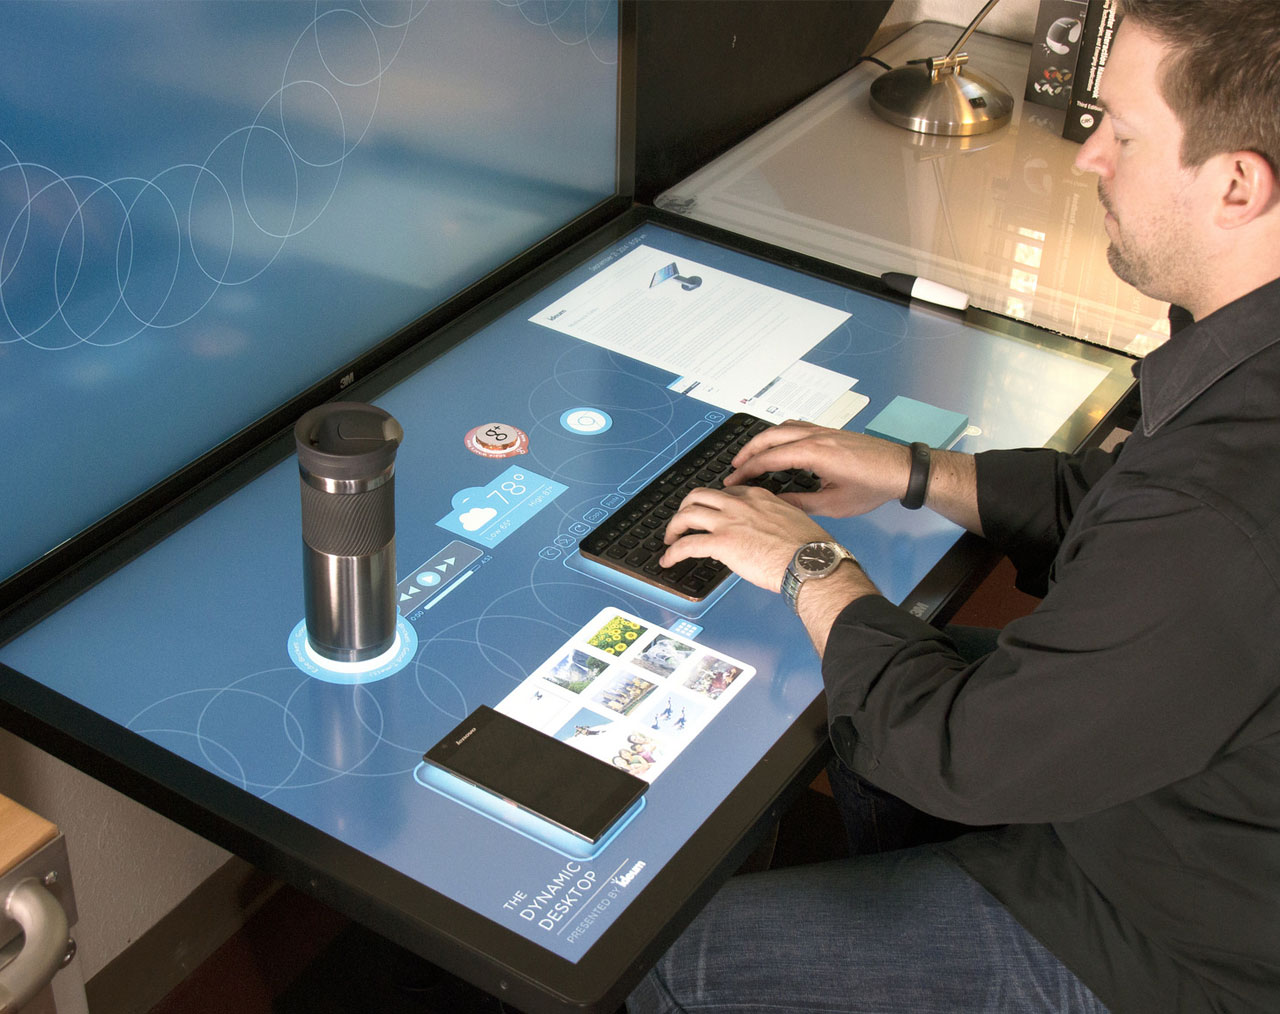 Image for the post: 'The Dynamic Desktop: Experimental Tangible Interfaces for Capacitive Touch Tables'